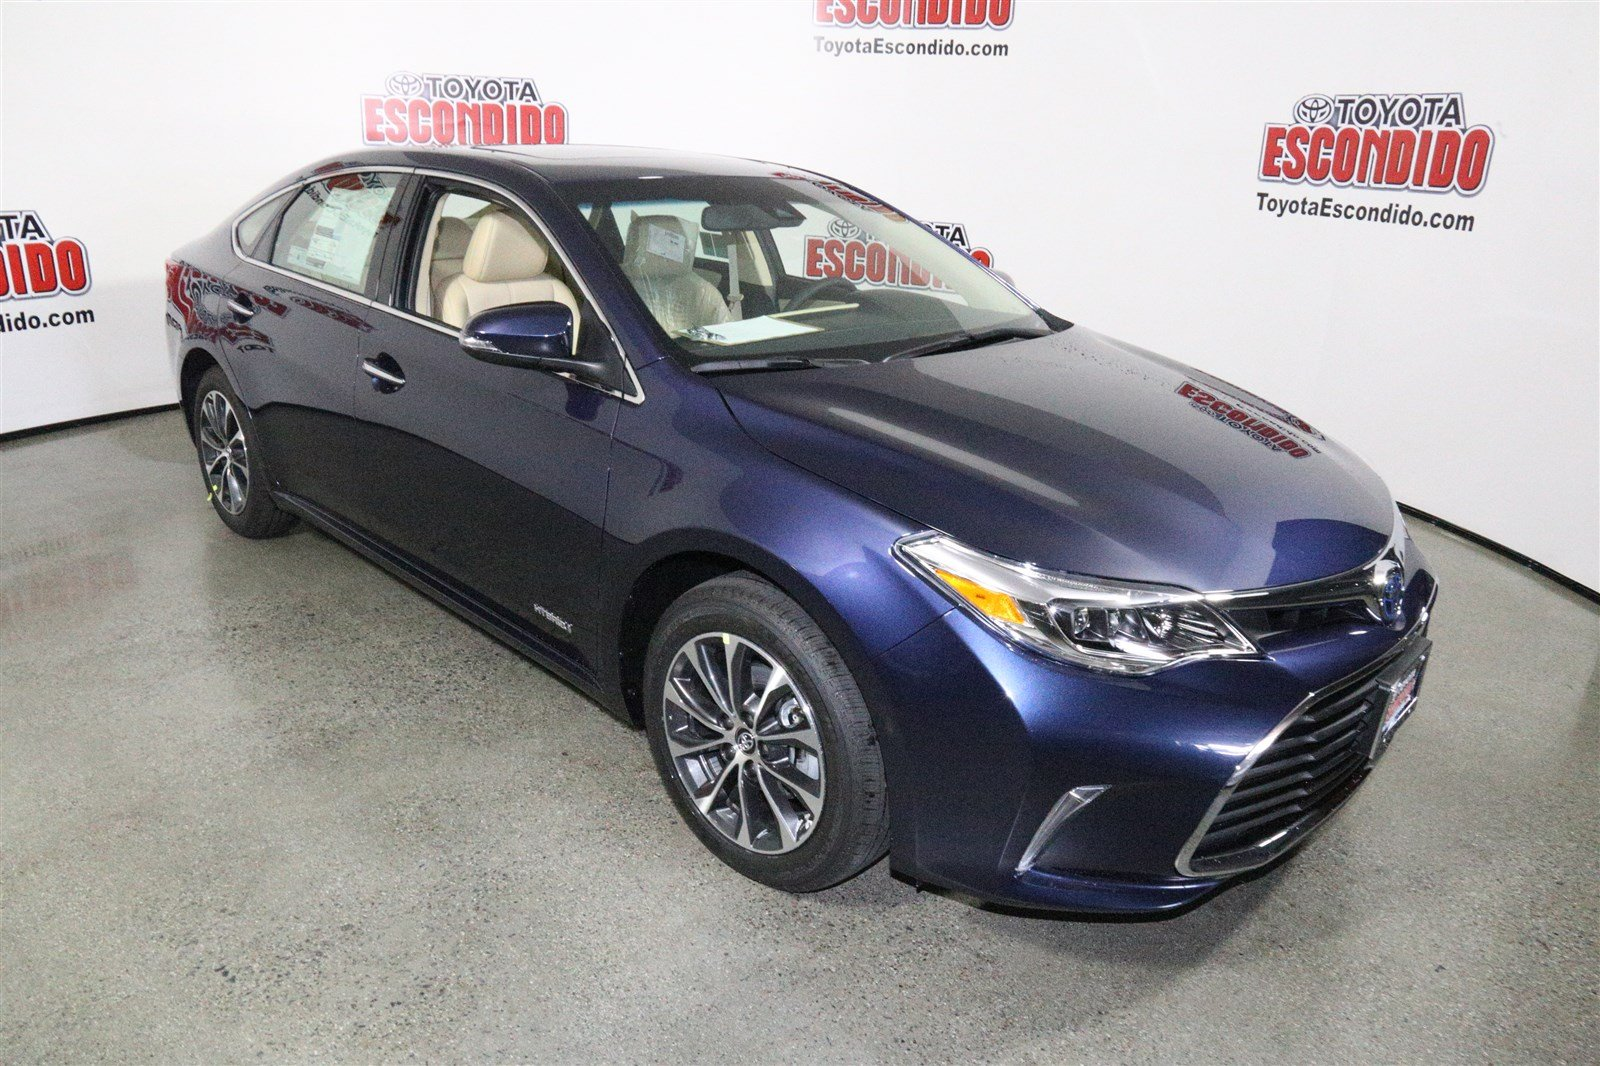 new 2018 toyota avalon hybrid xle premium 4dr car in escondido ju060107 toyota escondido. Black Bedroom Furniture Sets. Home Design Ideas